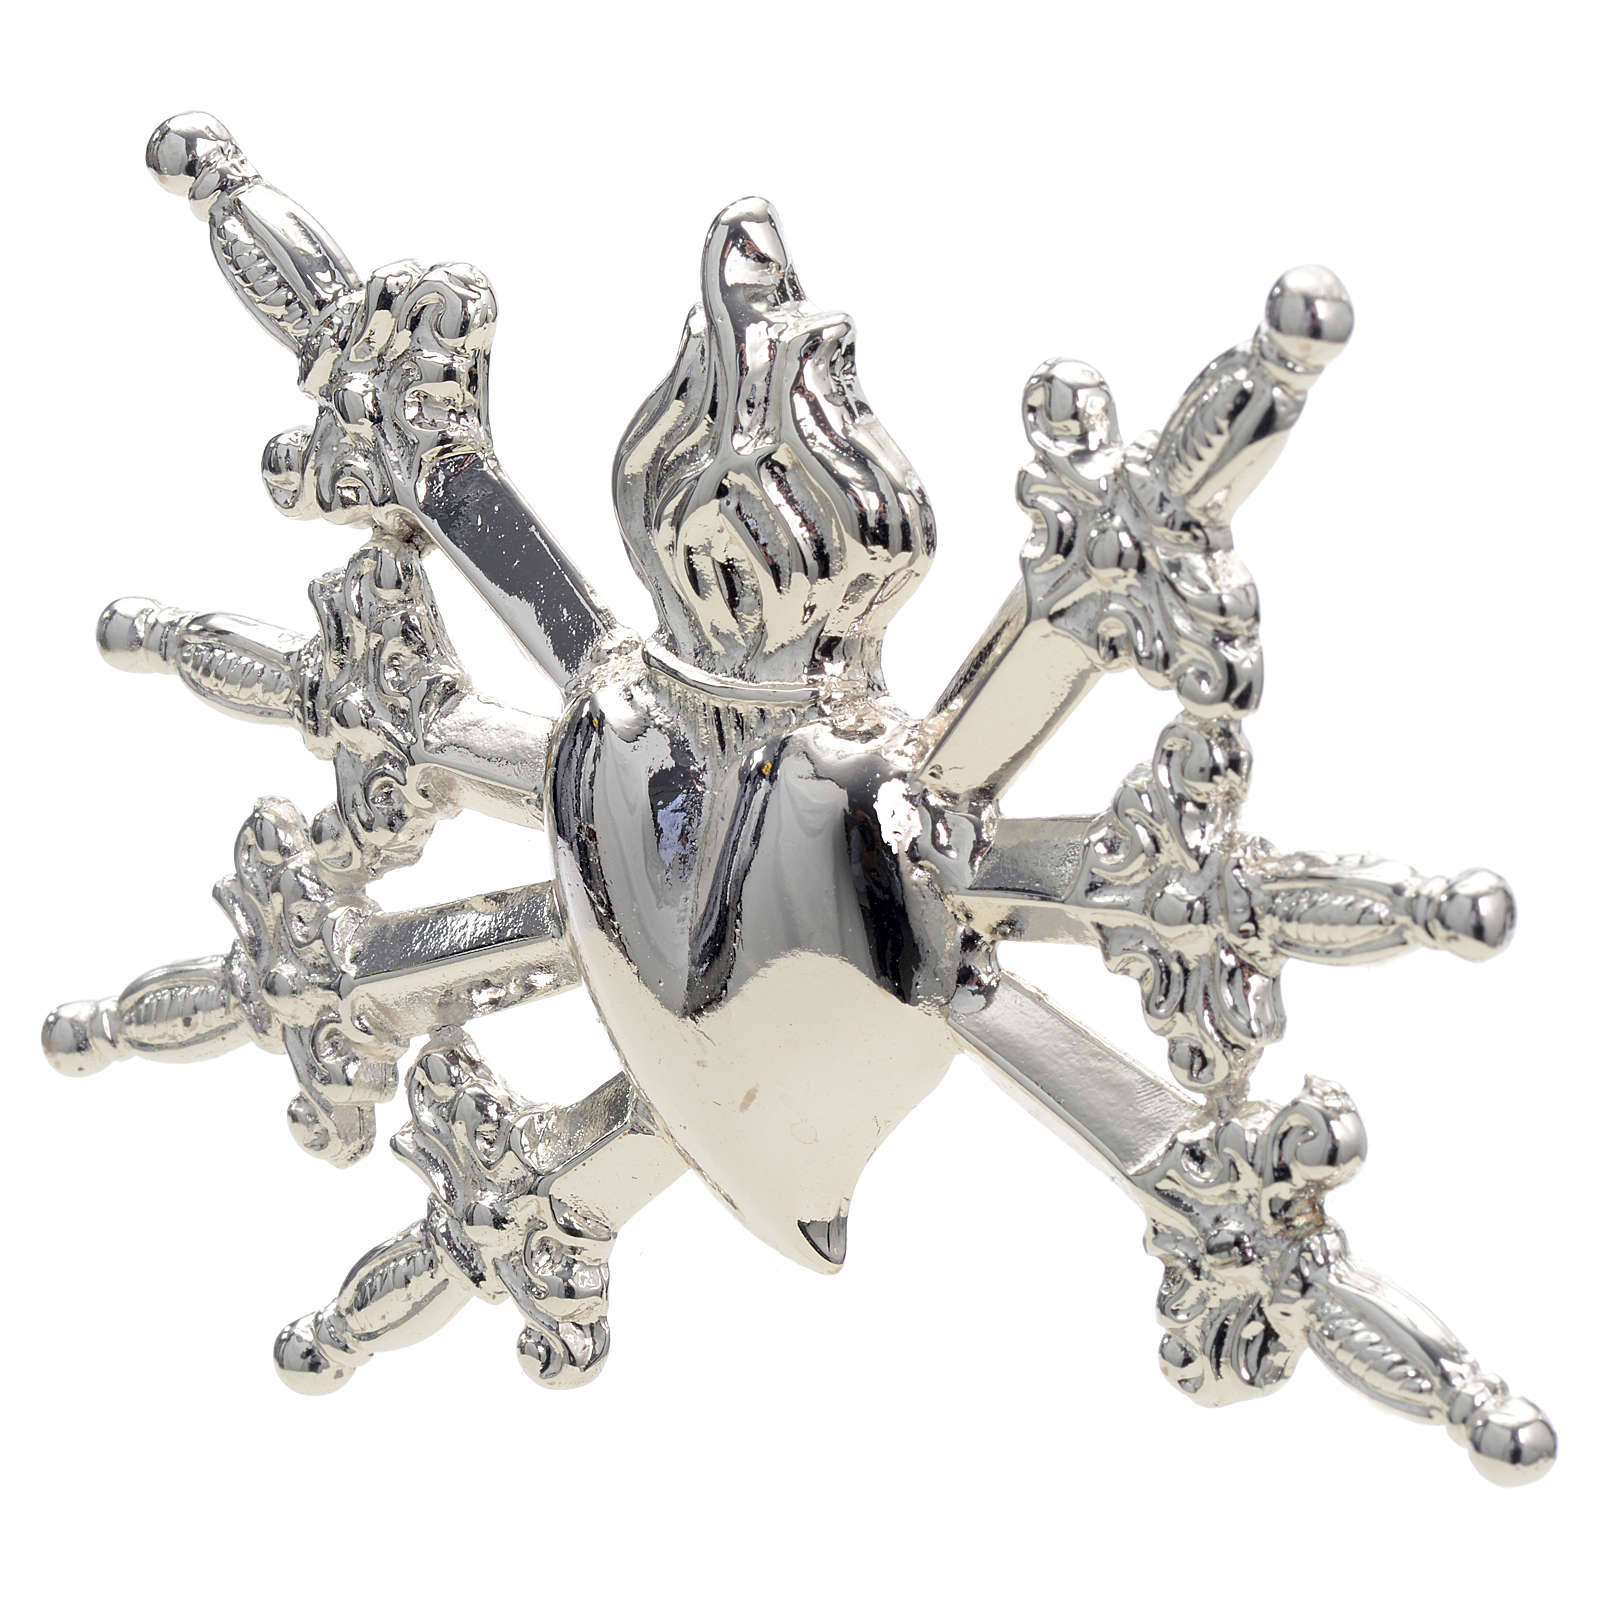 Heart with swords in silver-plated brass, 10cm 3